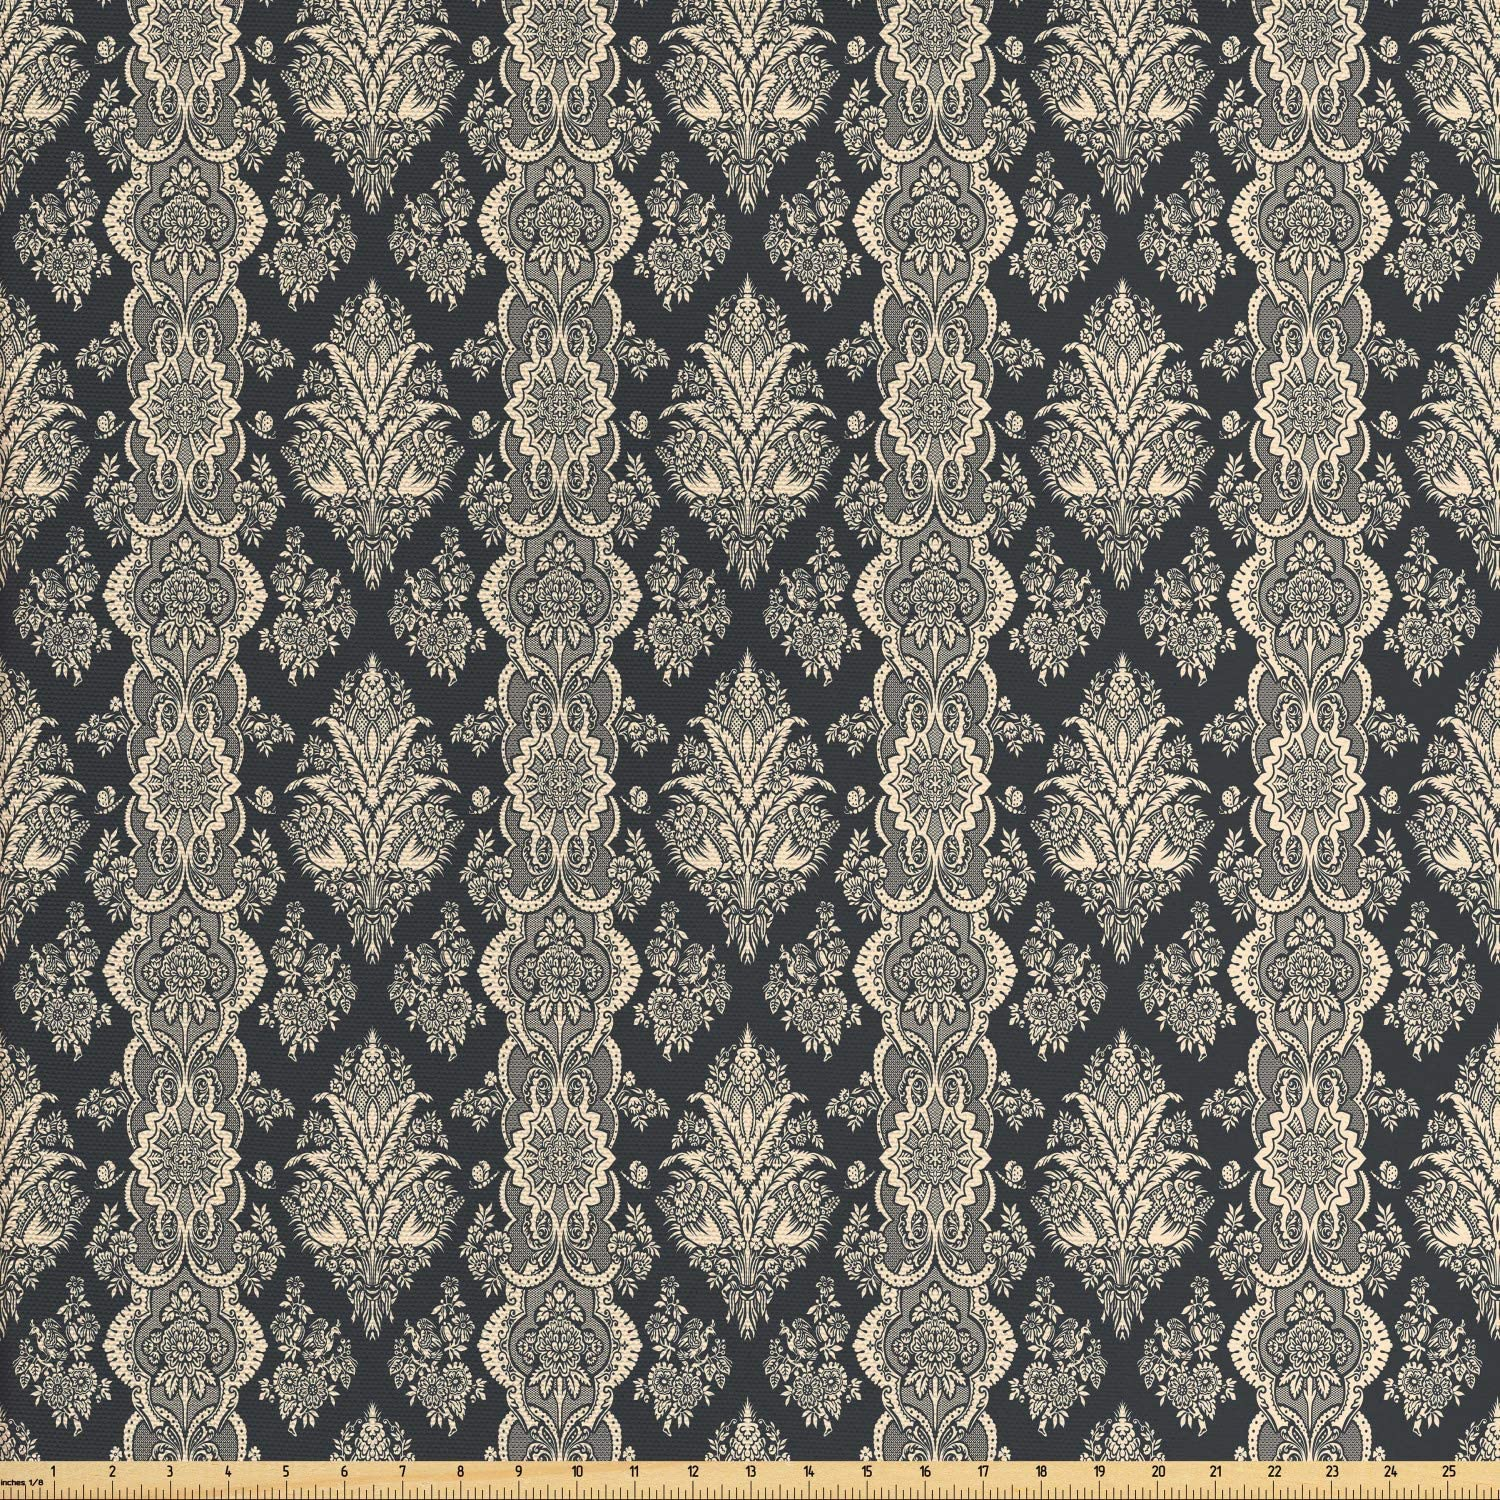 Ambesonne Damask Fabric by The Yard, Victorian Style Baroque Classic Pattern with Ornamental Floral Leaves Image, Decorative Fabric for Upholstery and Home Accents, 1 Yard, Charcoal Grey Cream